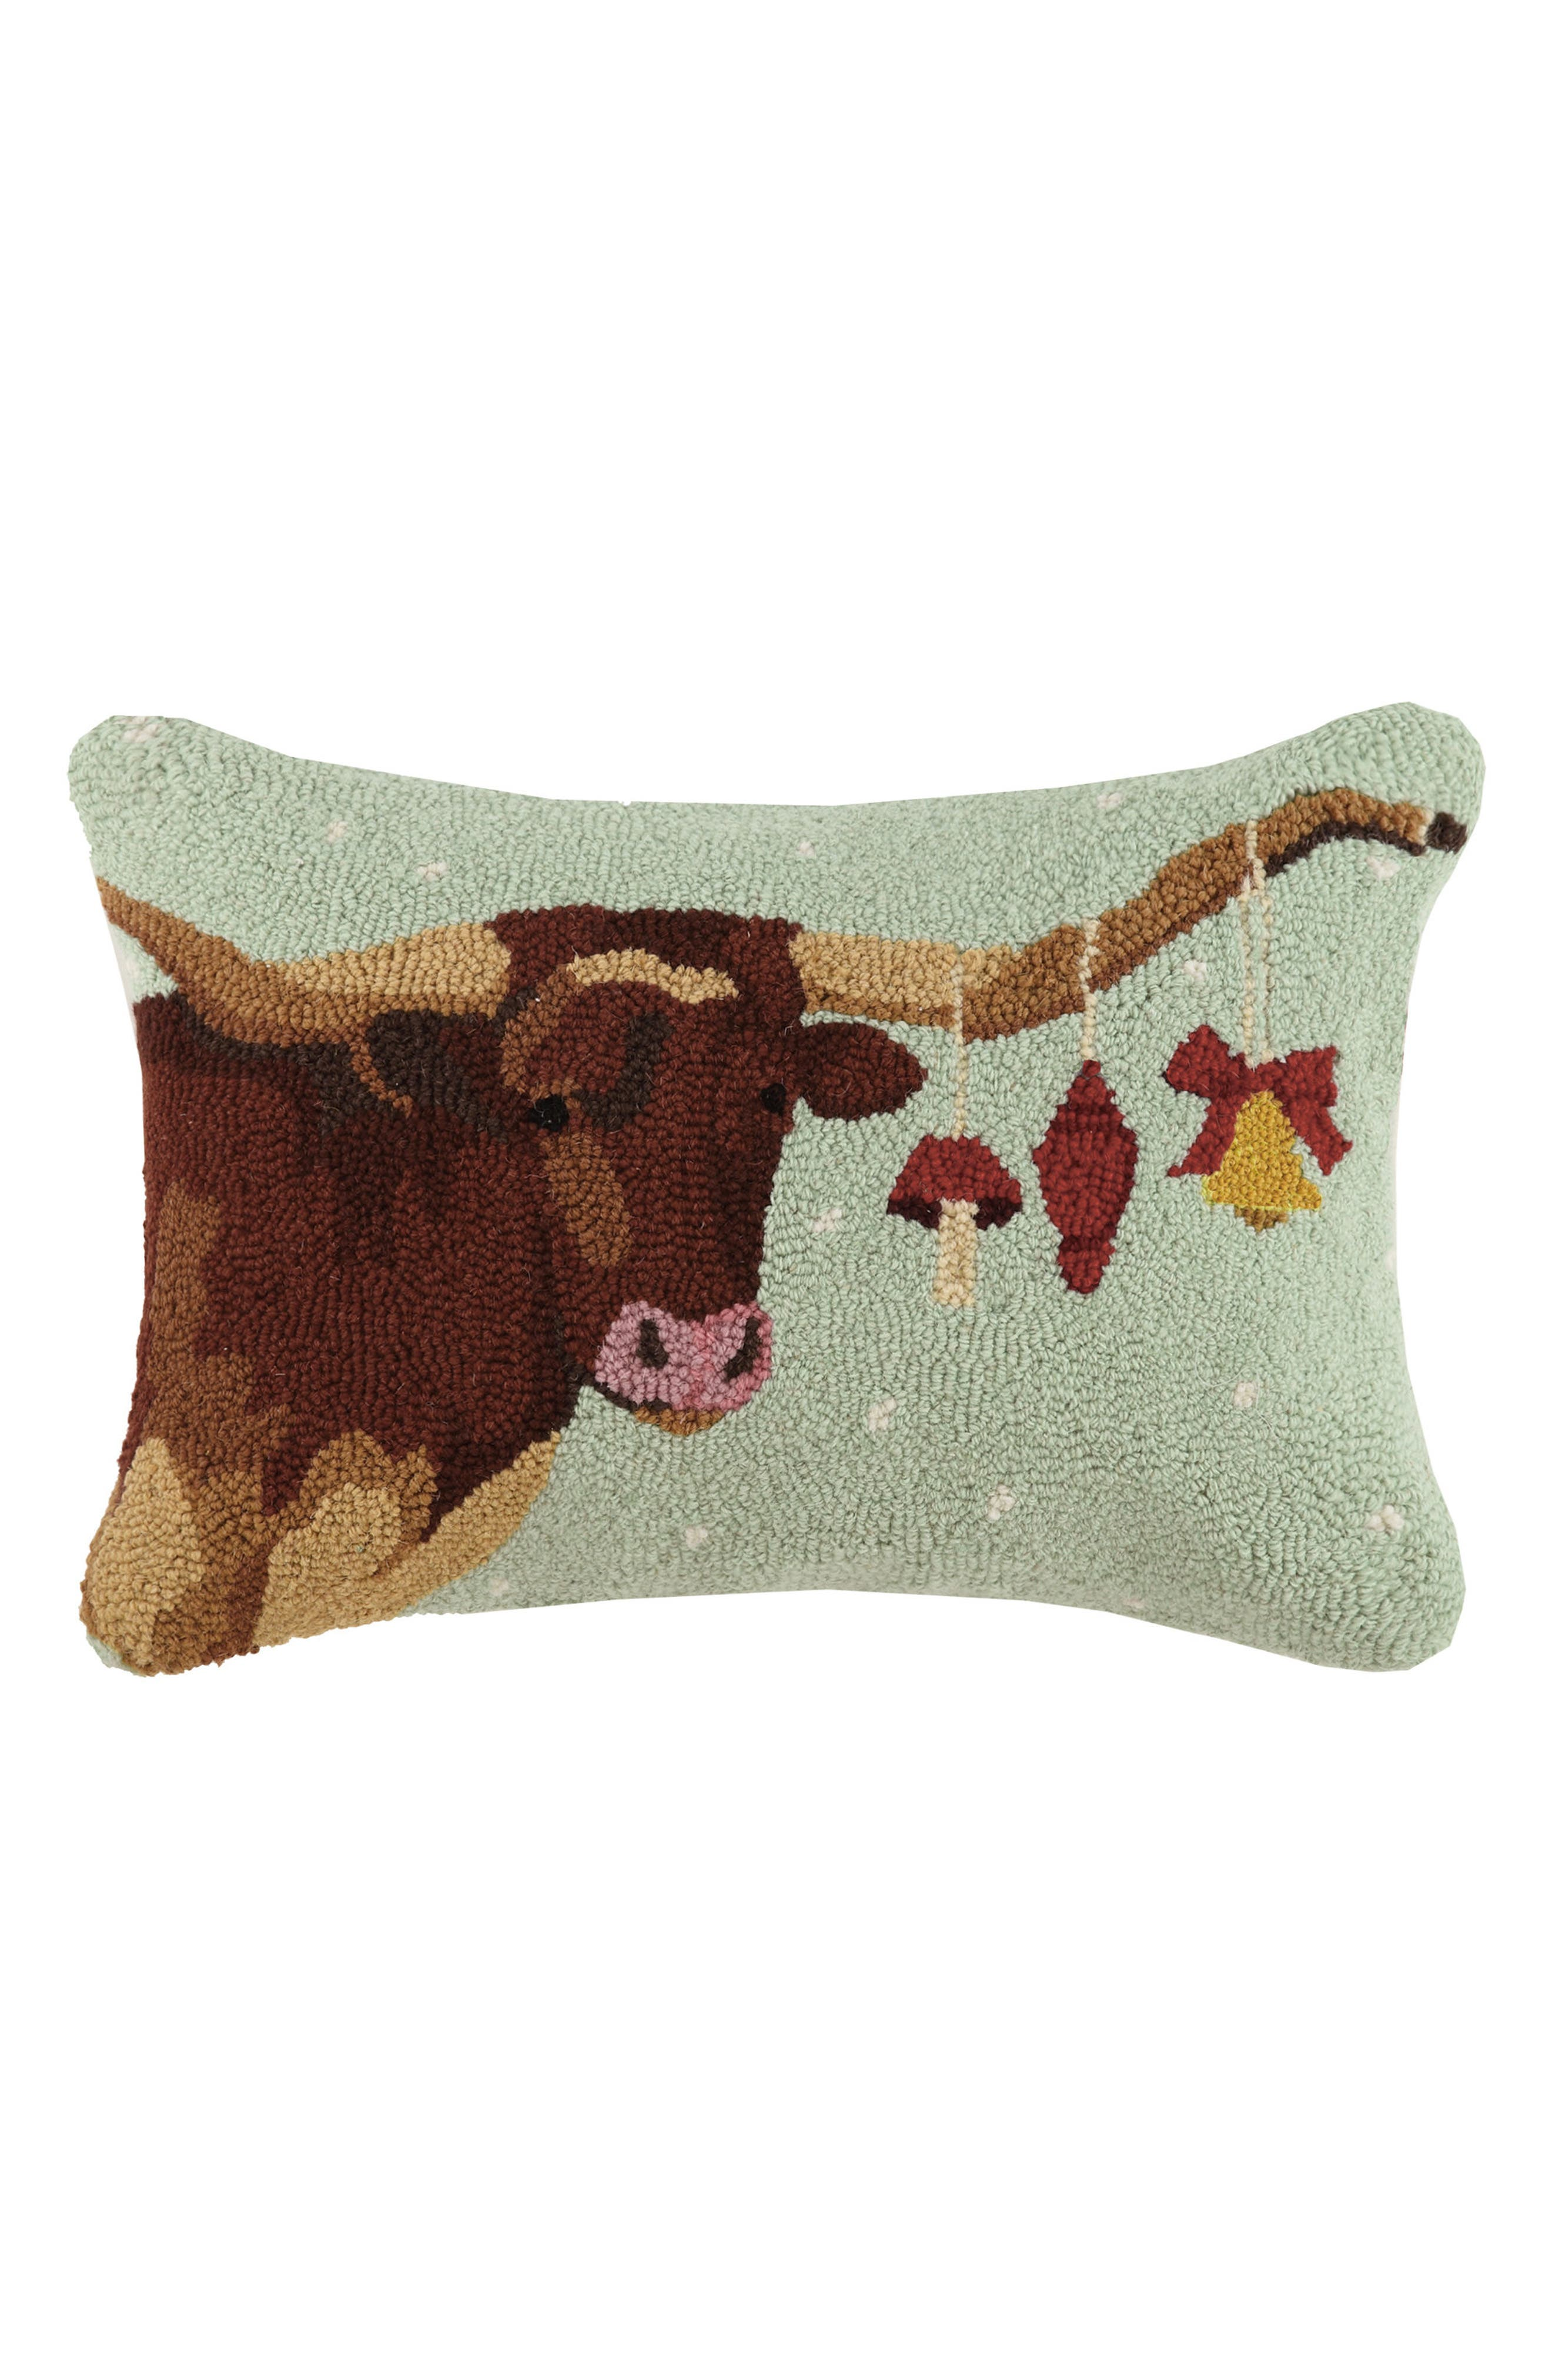 Peking Handicraft Longhorn with Ornaments Hooked Accent Pillow